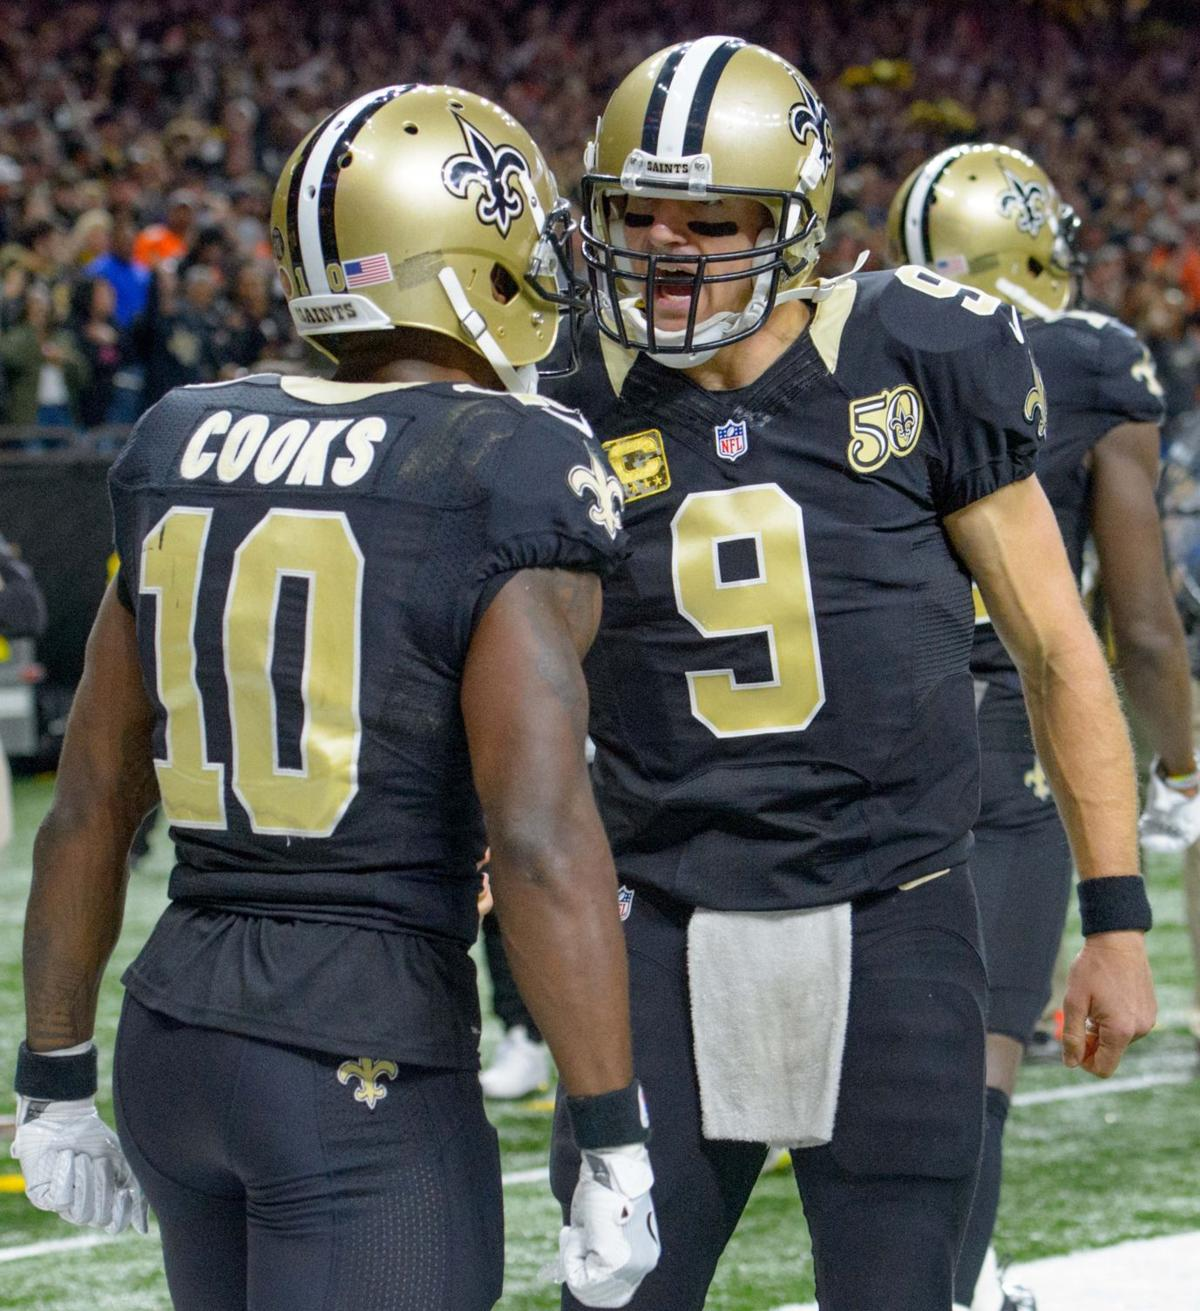 Drew Brees hopes Brandin Cooks got what he wanted in trade but